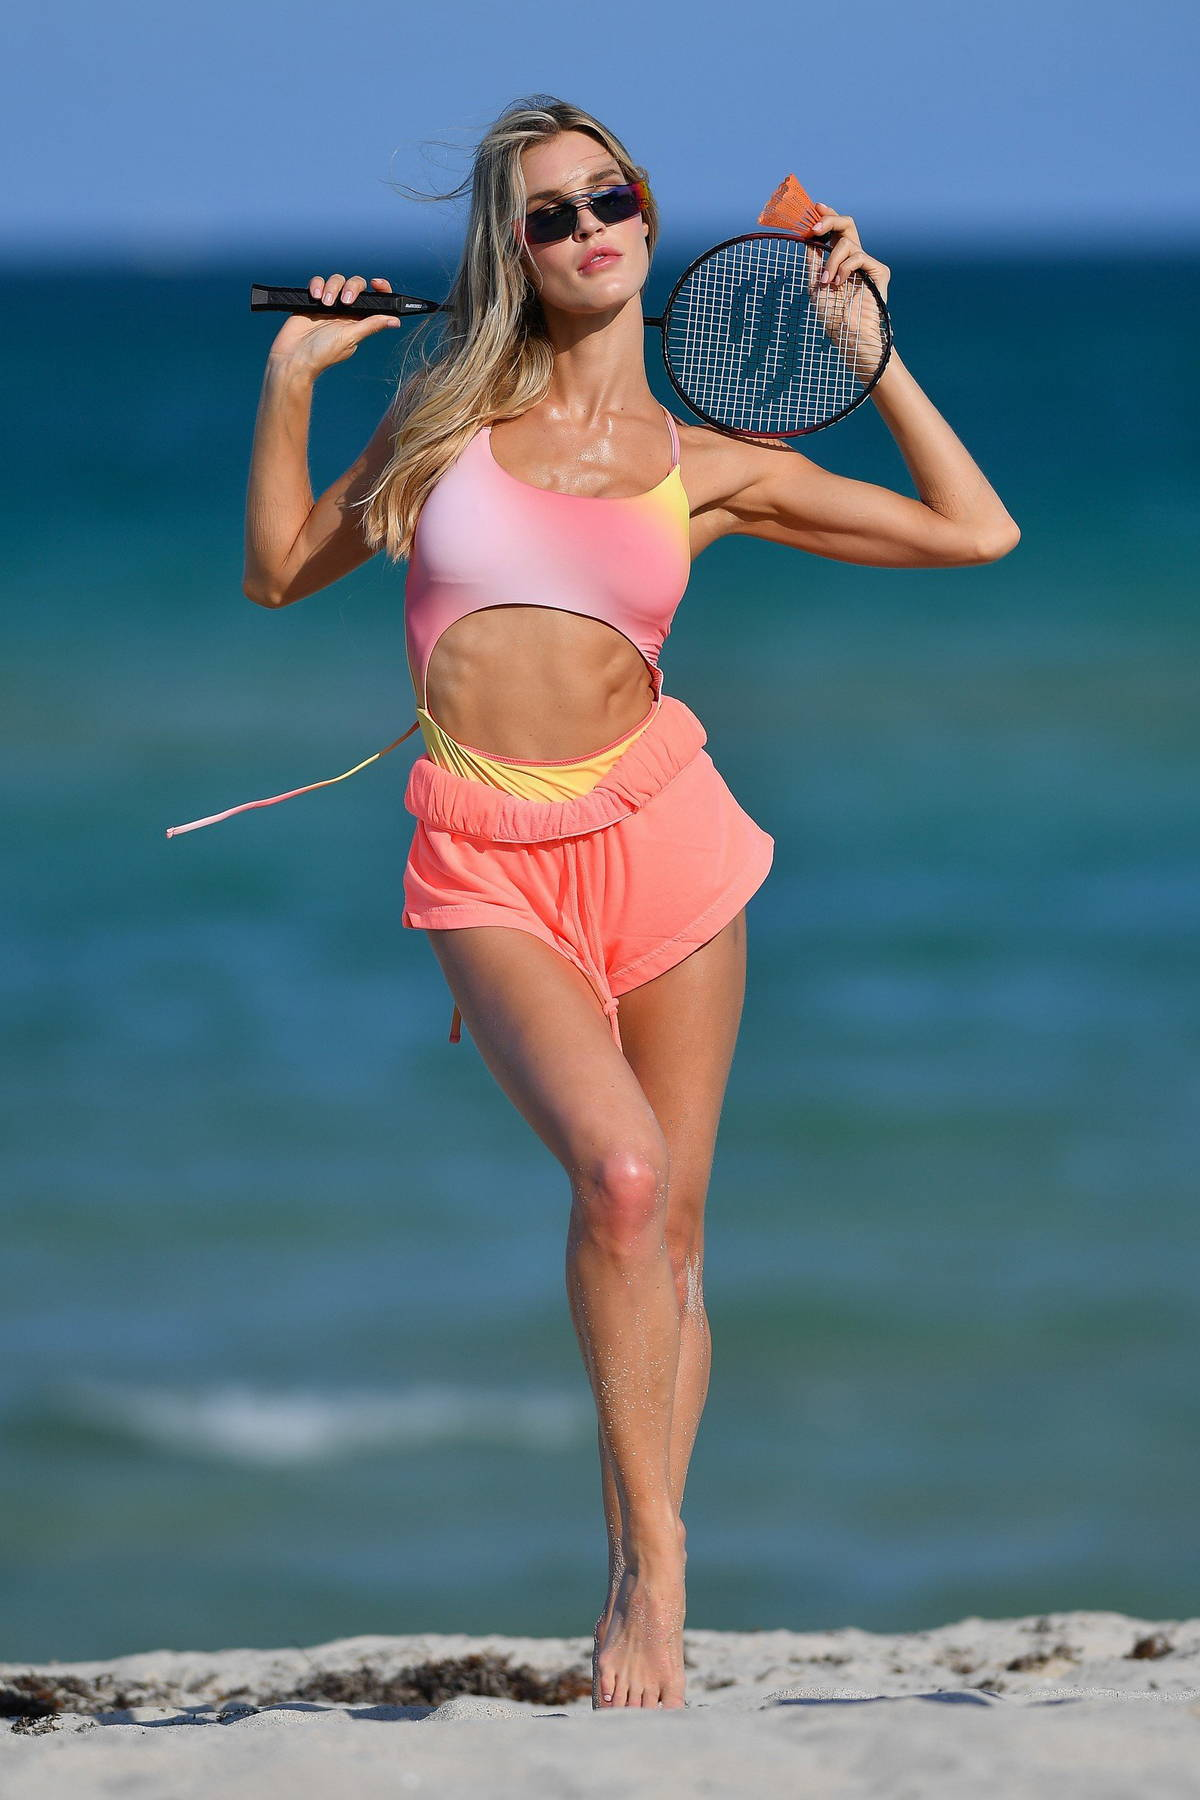 Joy Corrigan looks amazing in a tie-dye swimsuit and a pink bikini during a beach photoshoot in Miami Beach, Florida